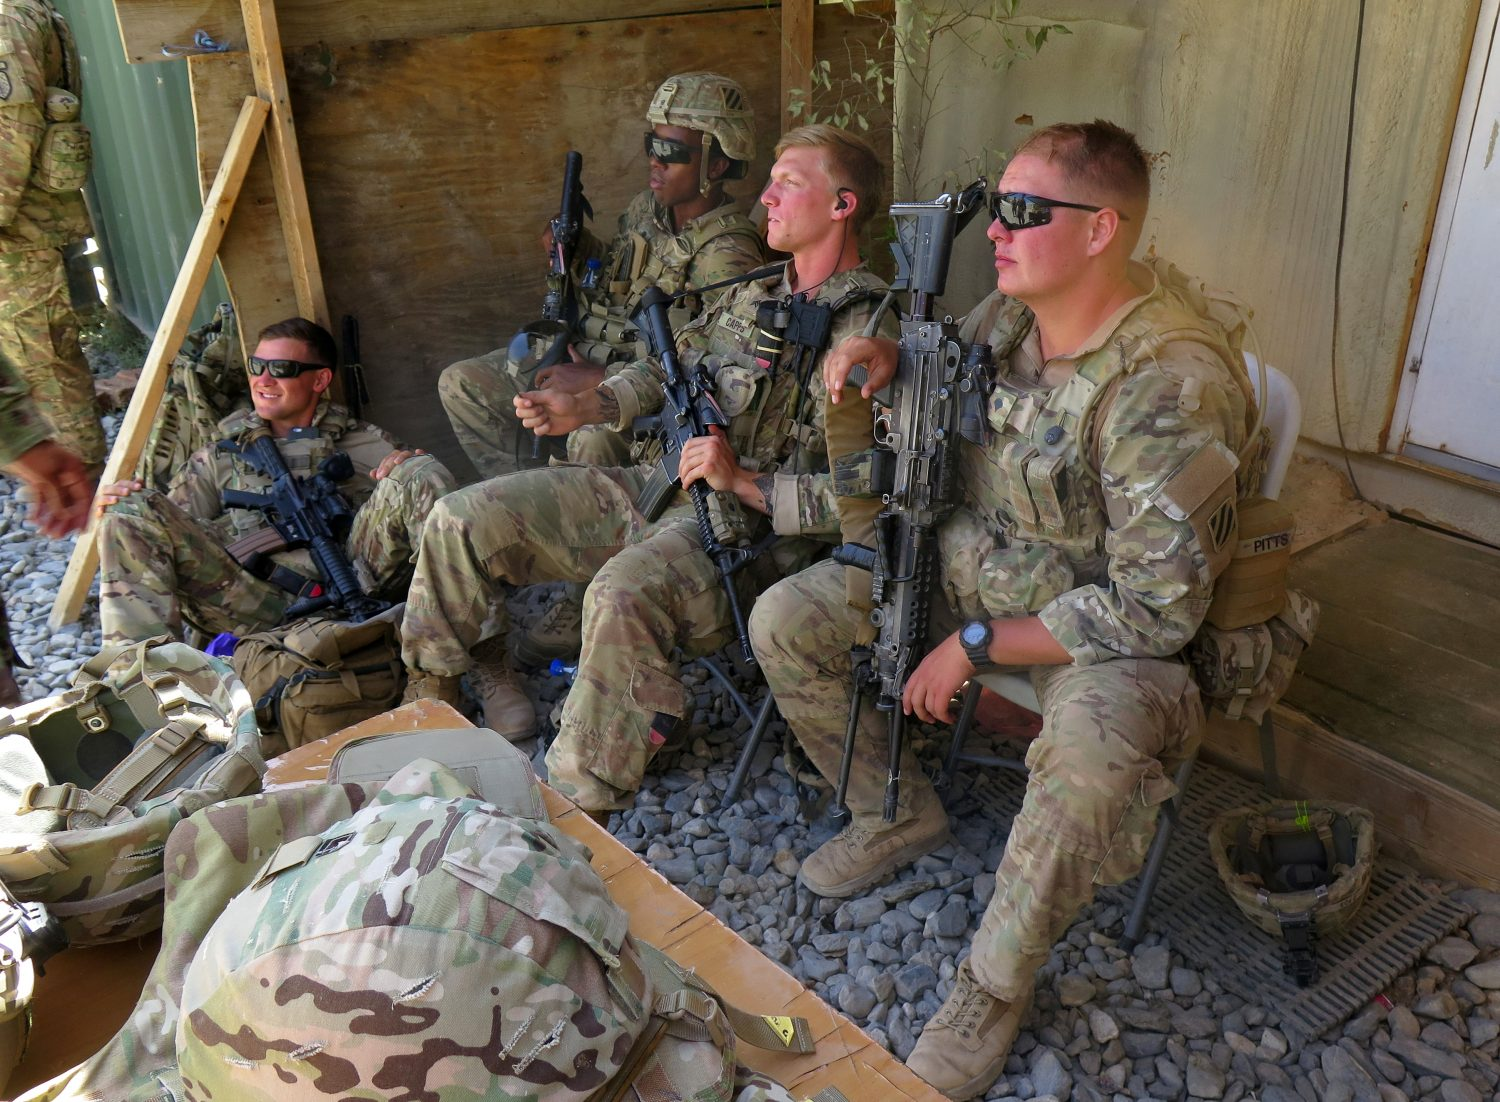 FILE PHOTO: U.S. military advisers from the 1st Security Force Assistance Brigade sit at an Afghan National Army base in Maidan Wardak province, Afghanistan August 6, 2018. REUTERS/James Mackenzie/File Photo